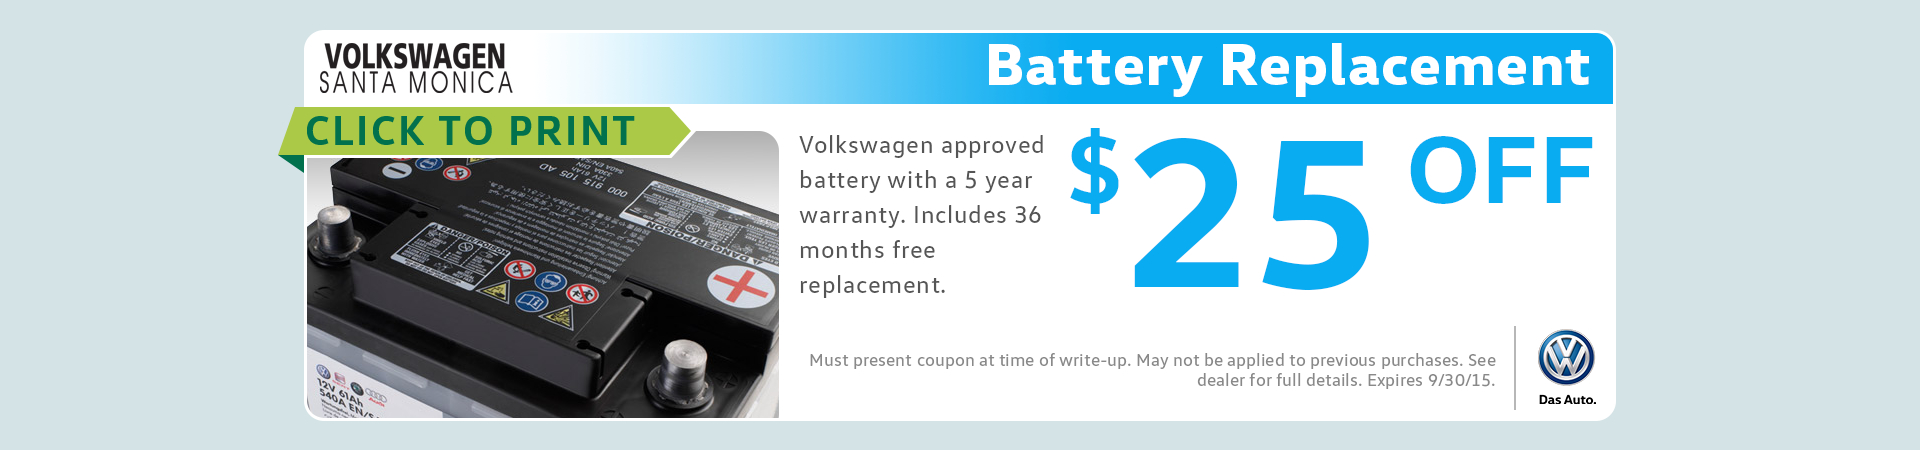 Genuine VW Battery Replacement Service Special serving Santa Monica, CA